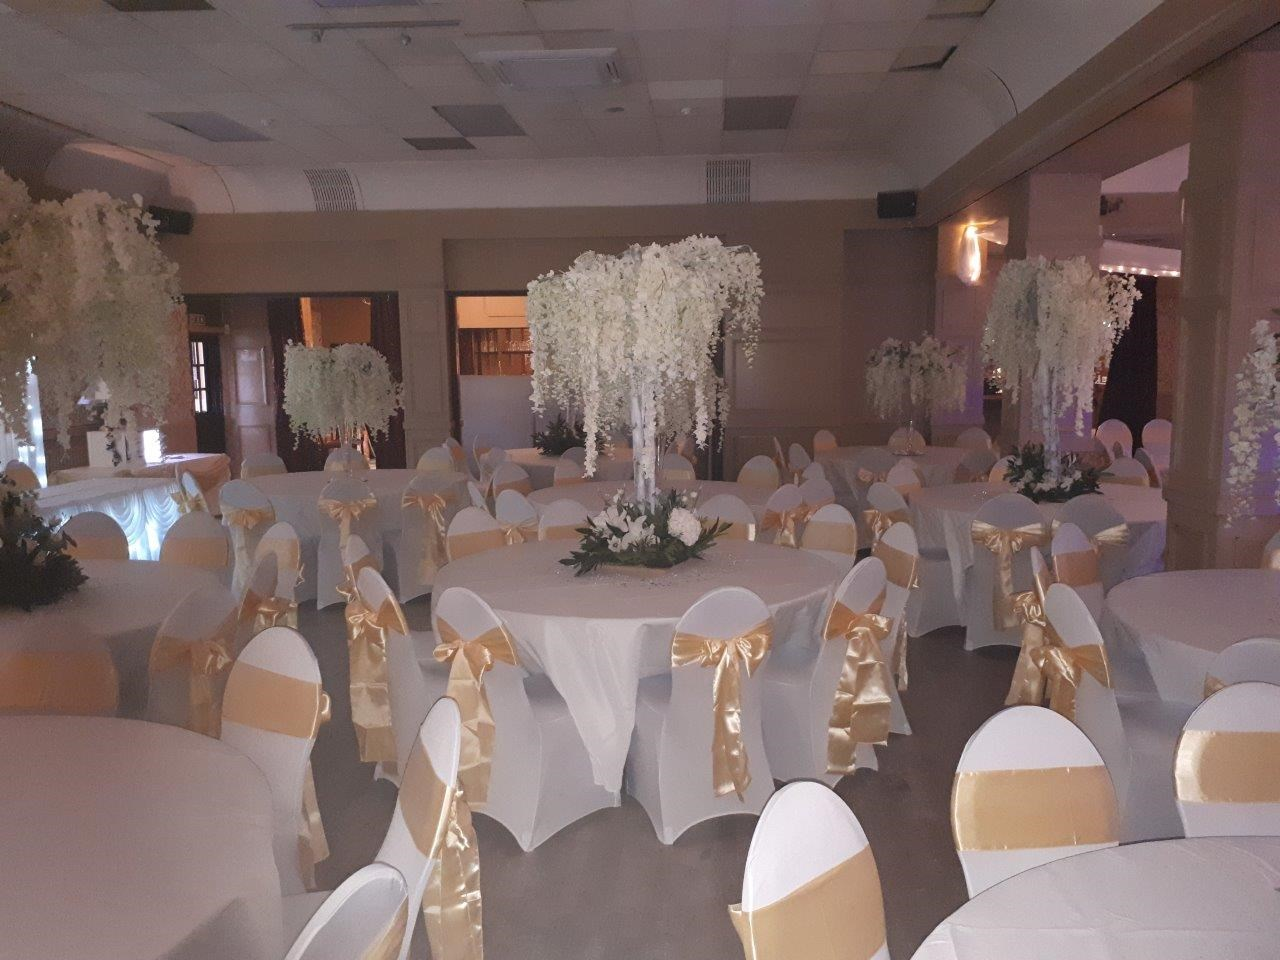 Chair Covers and Bows - Venue Decoration